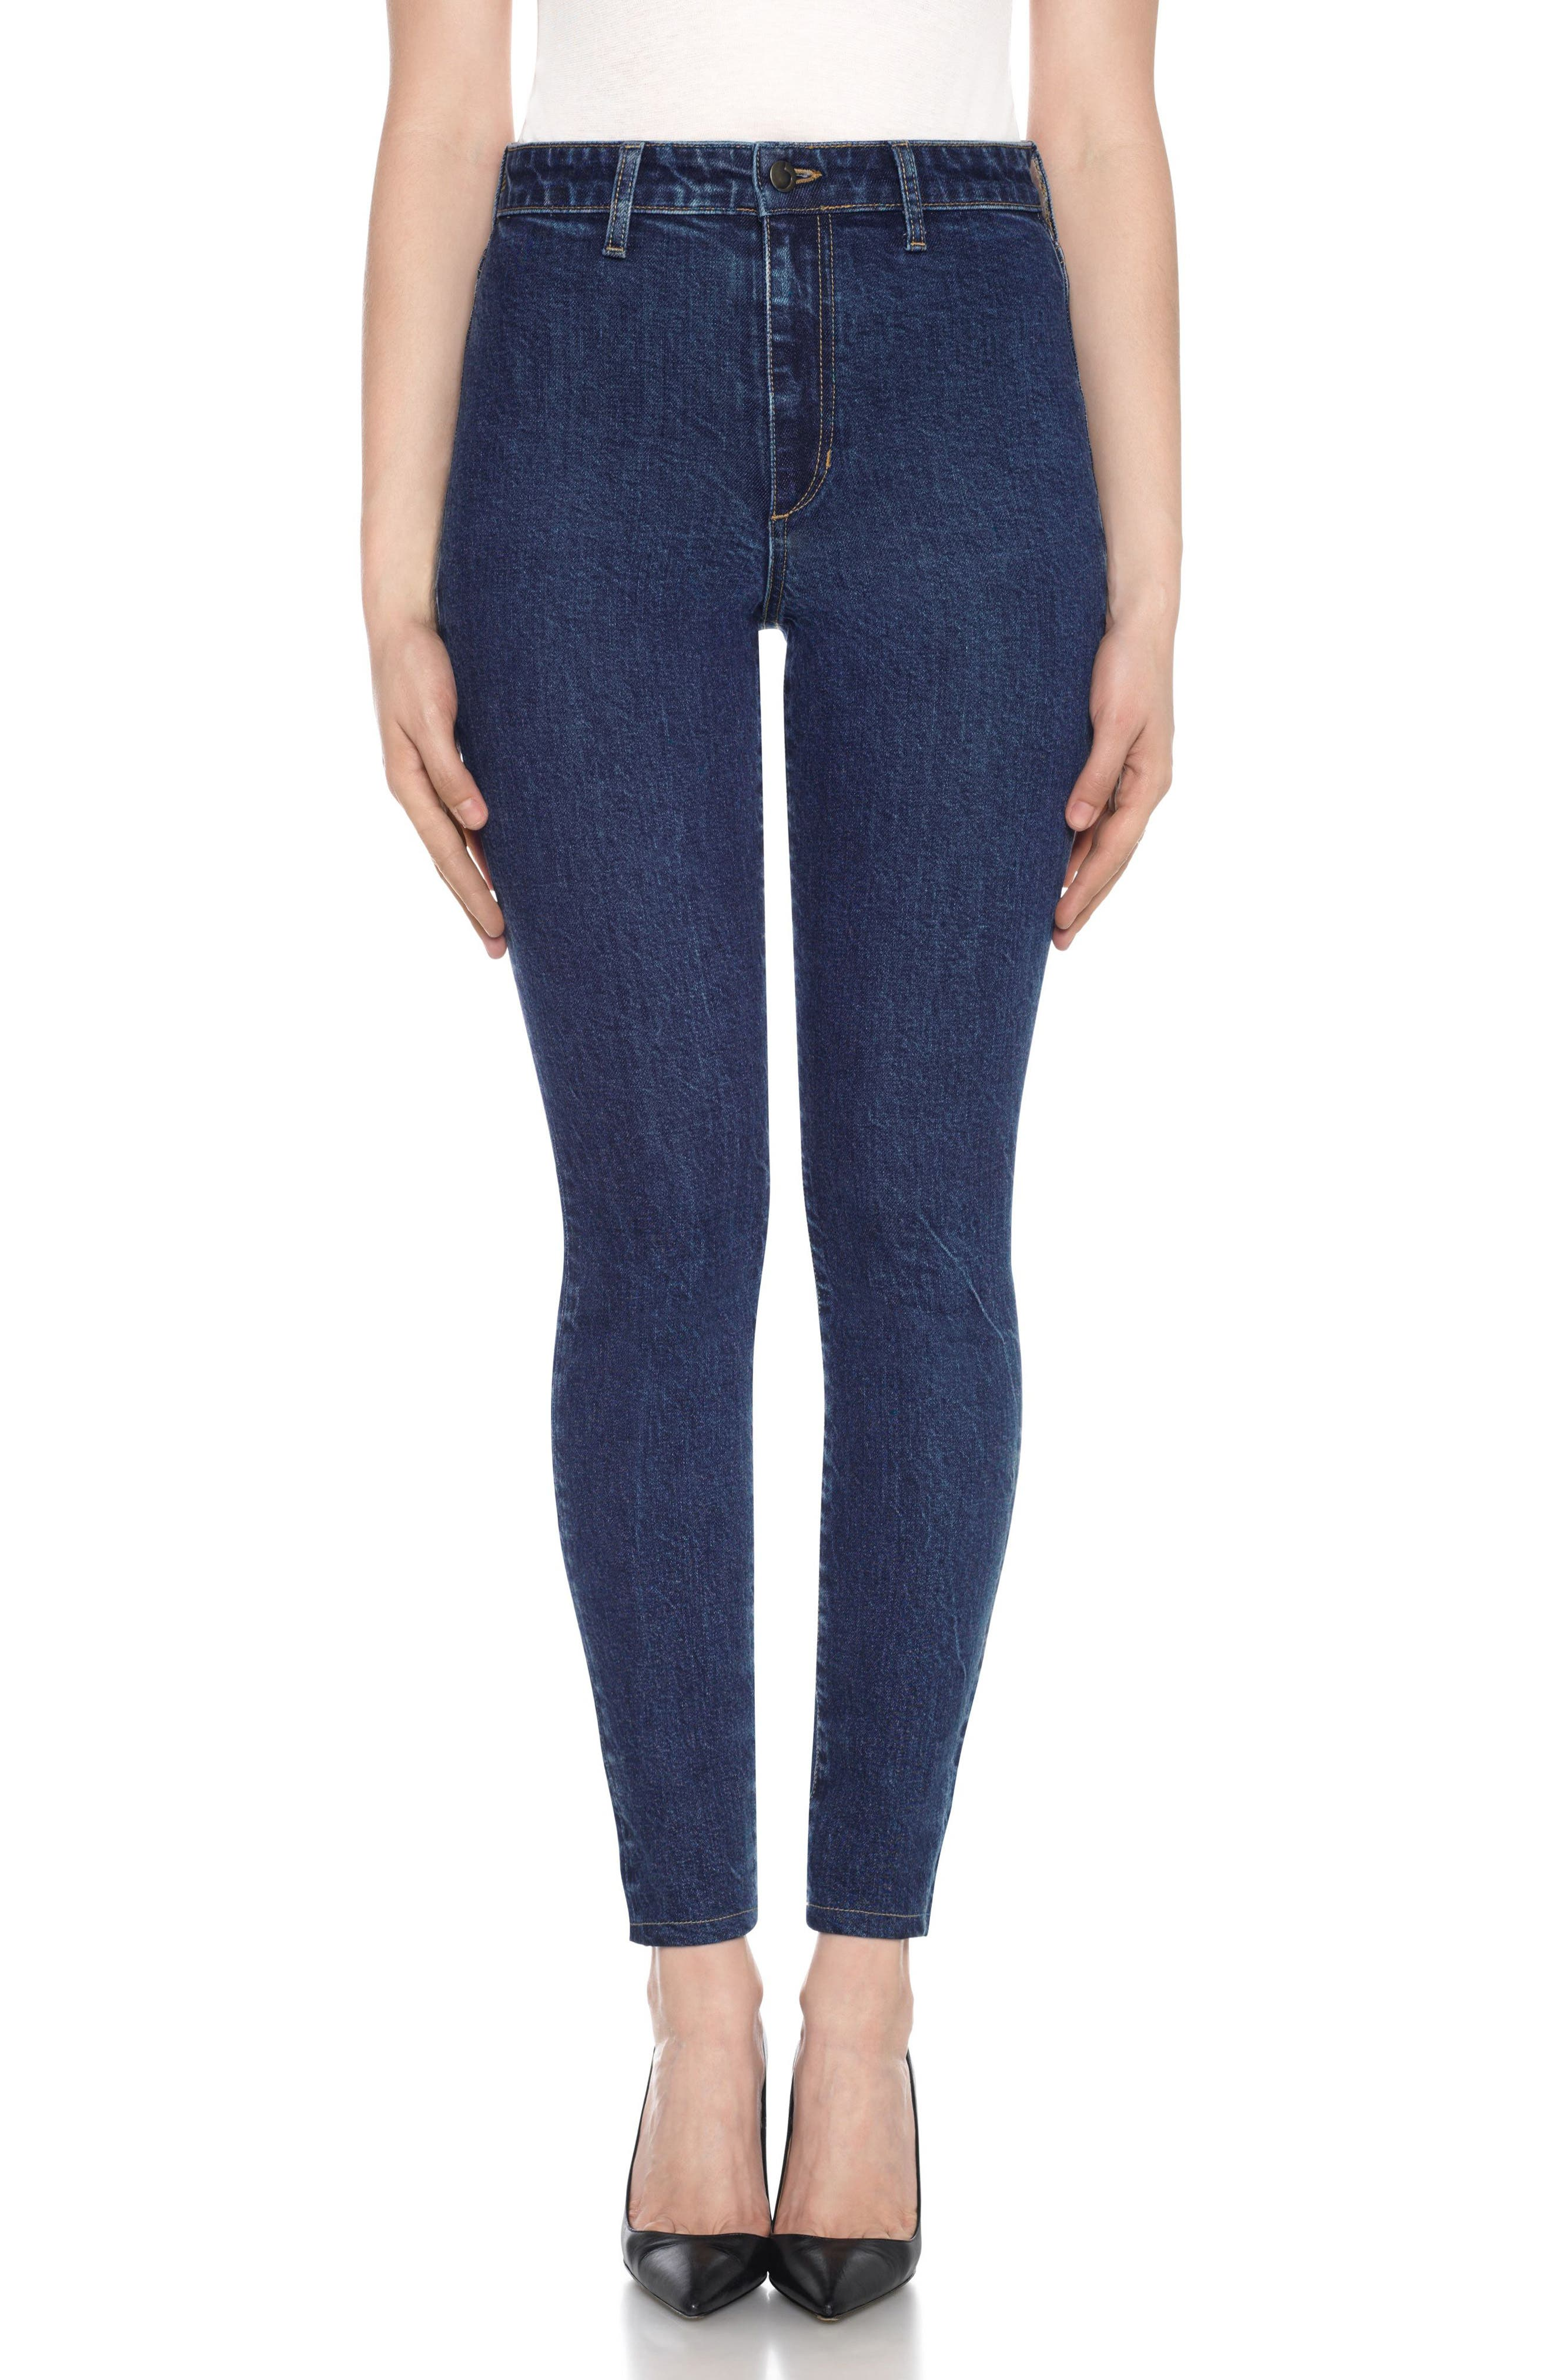 Charlie High Waist Ankle Skinny Jeans,                         Main,                         color, Sheela